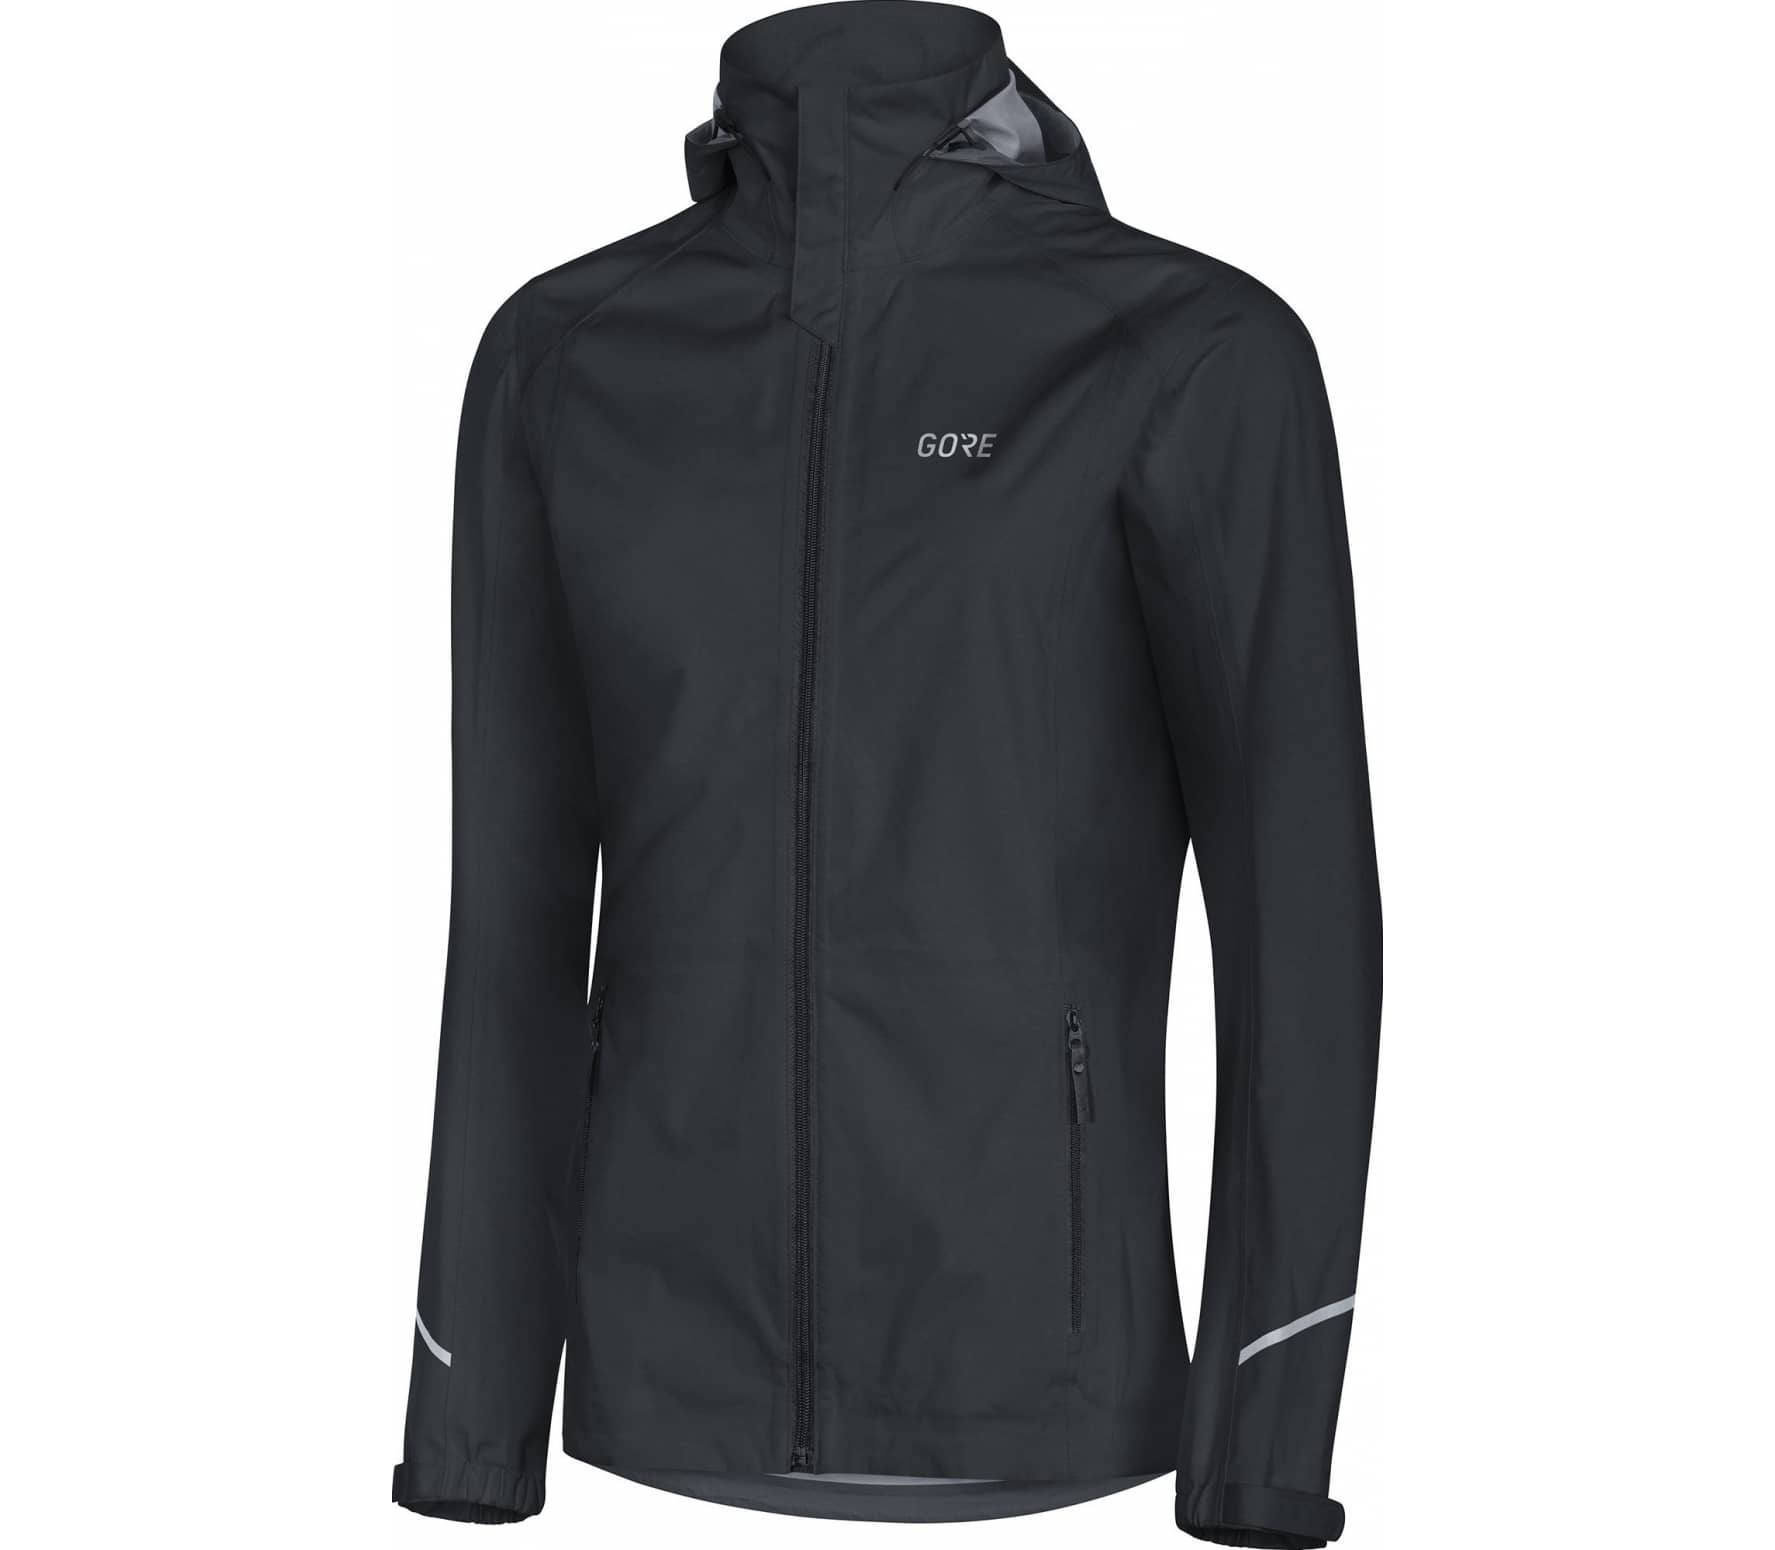 GORE® Wear - R3 GTX Active women's running jacket (black) - XS thumbnail